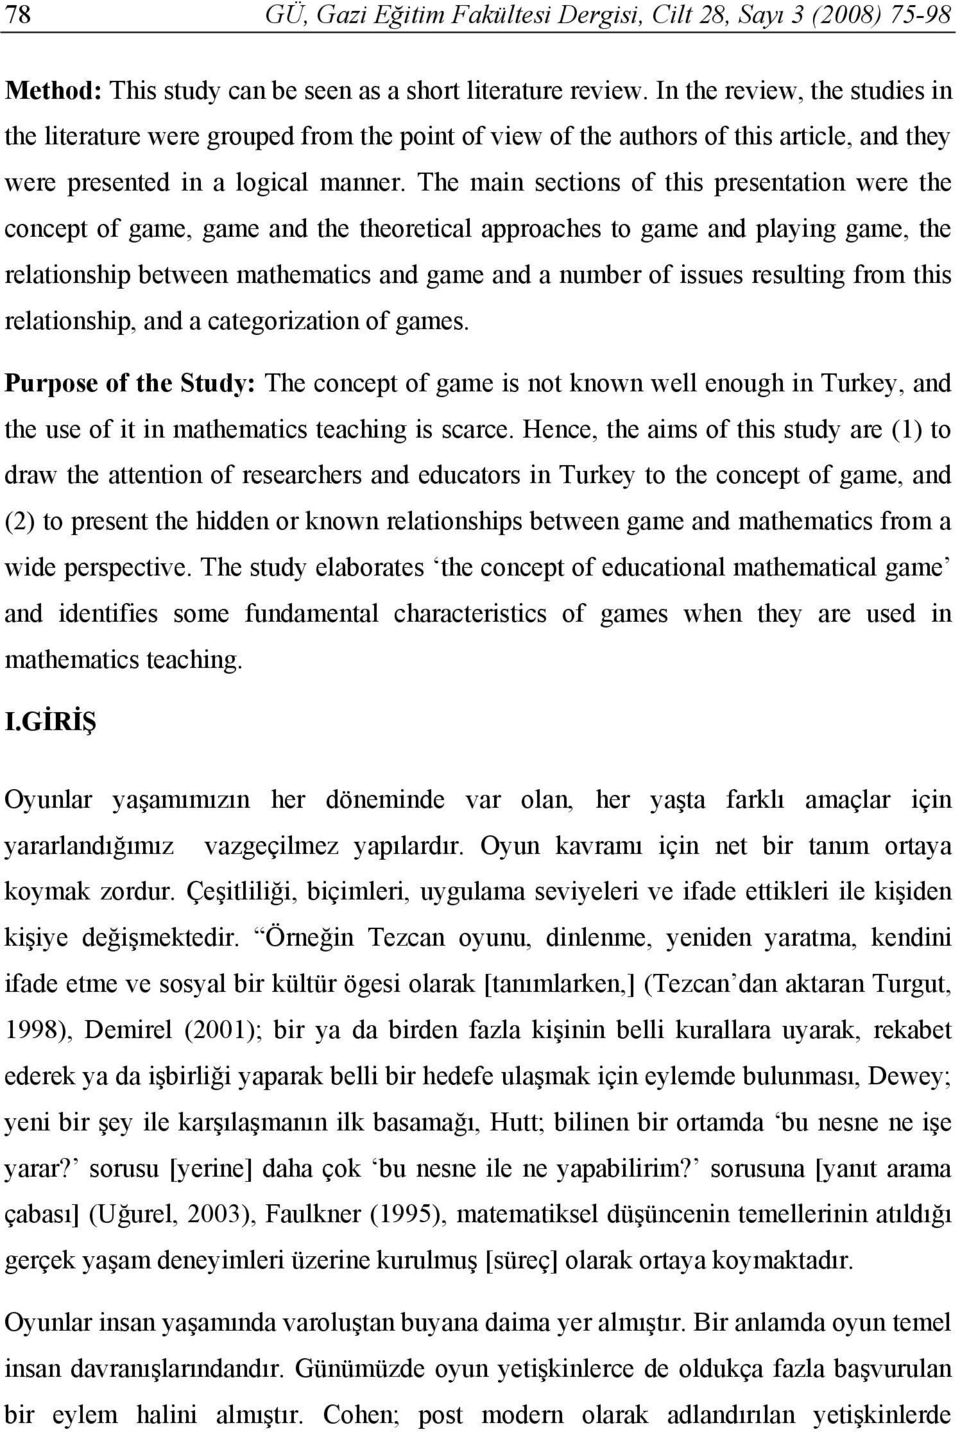 The main sections of this presentation were the concept of game, game and the theoretical approaches to game and playing game, the relationship between mathematics and game and a number of issues